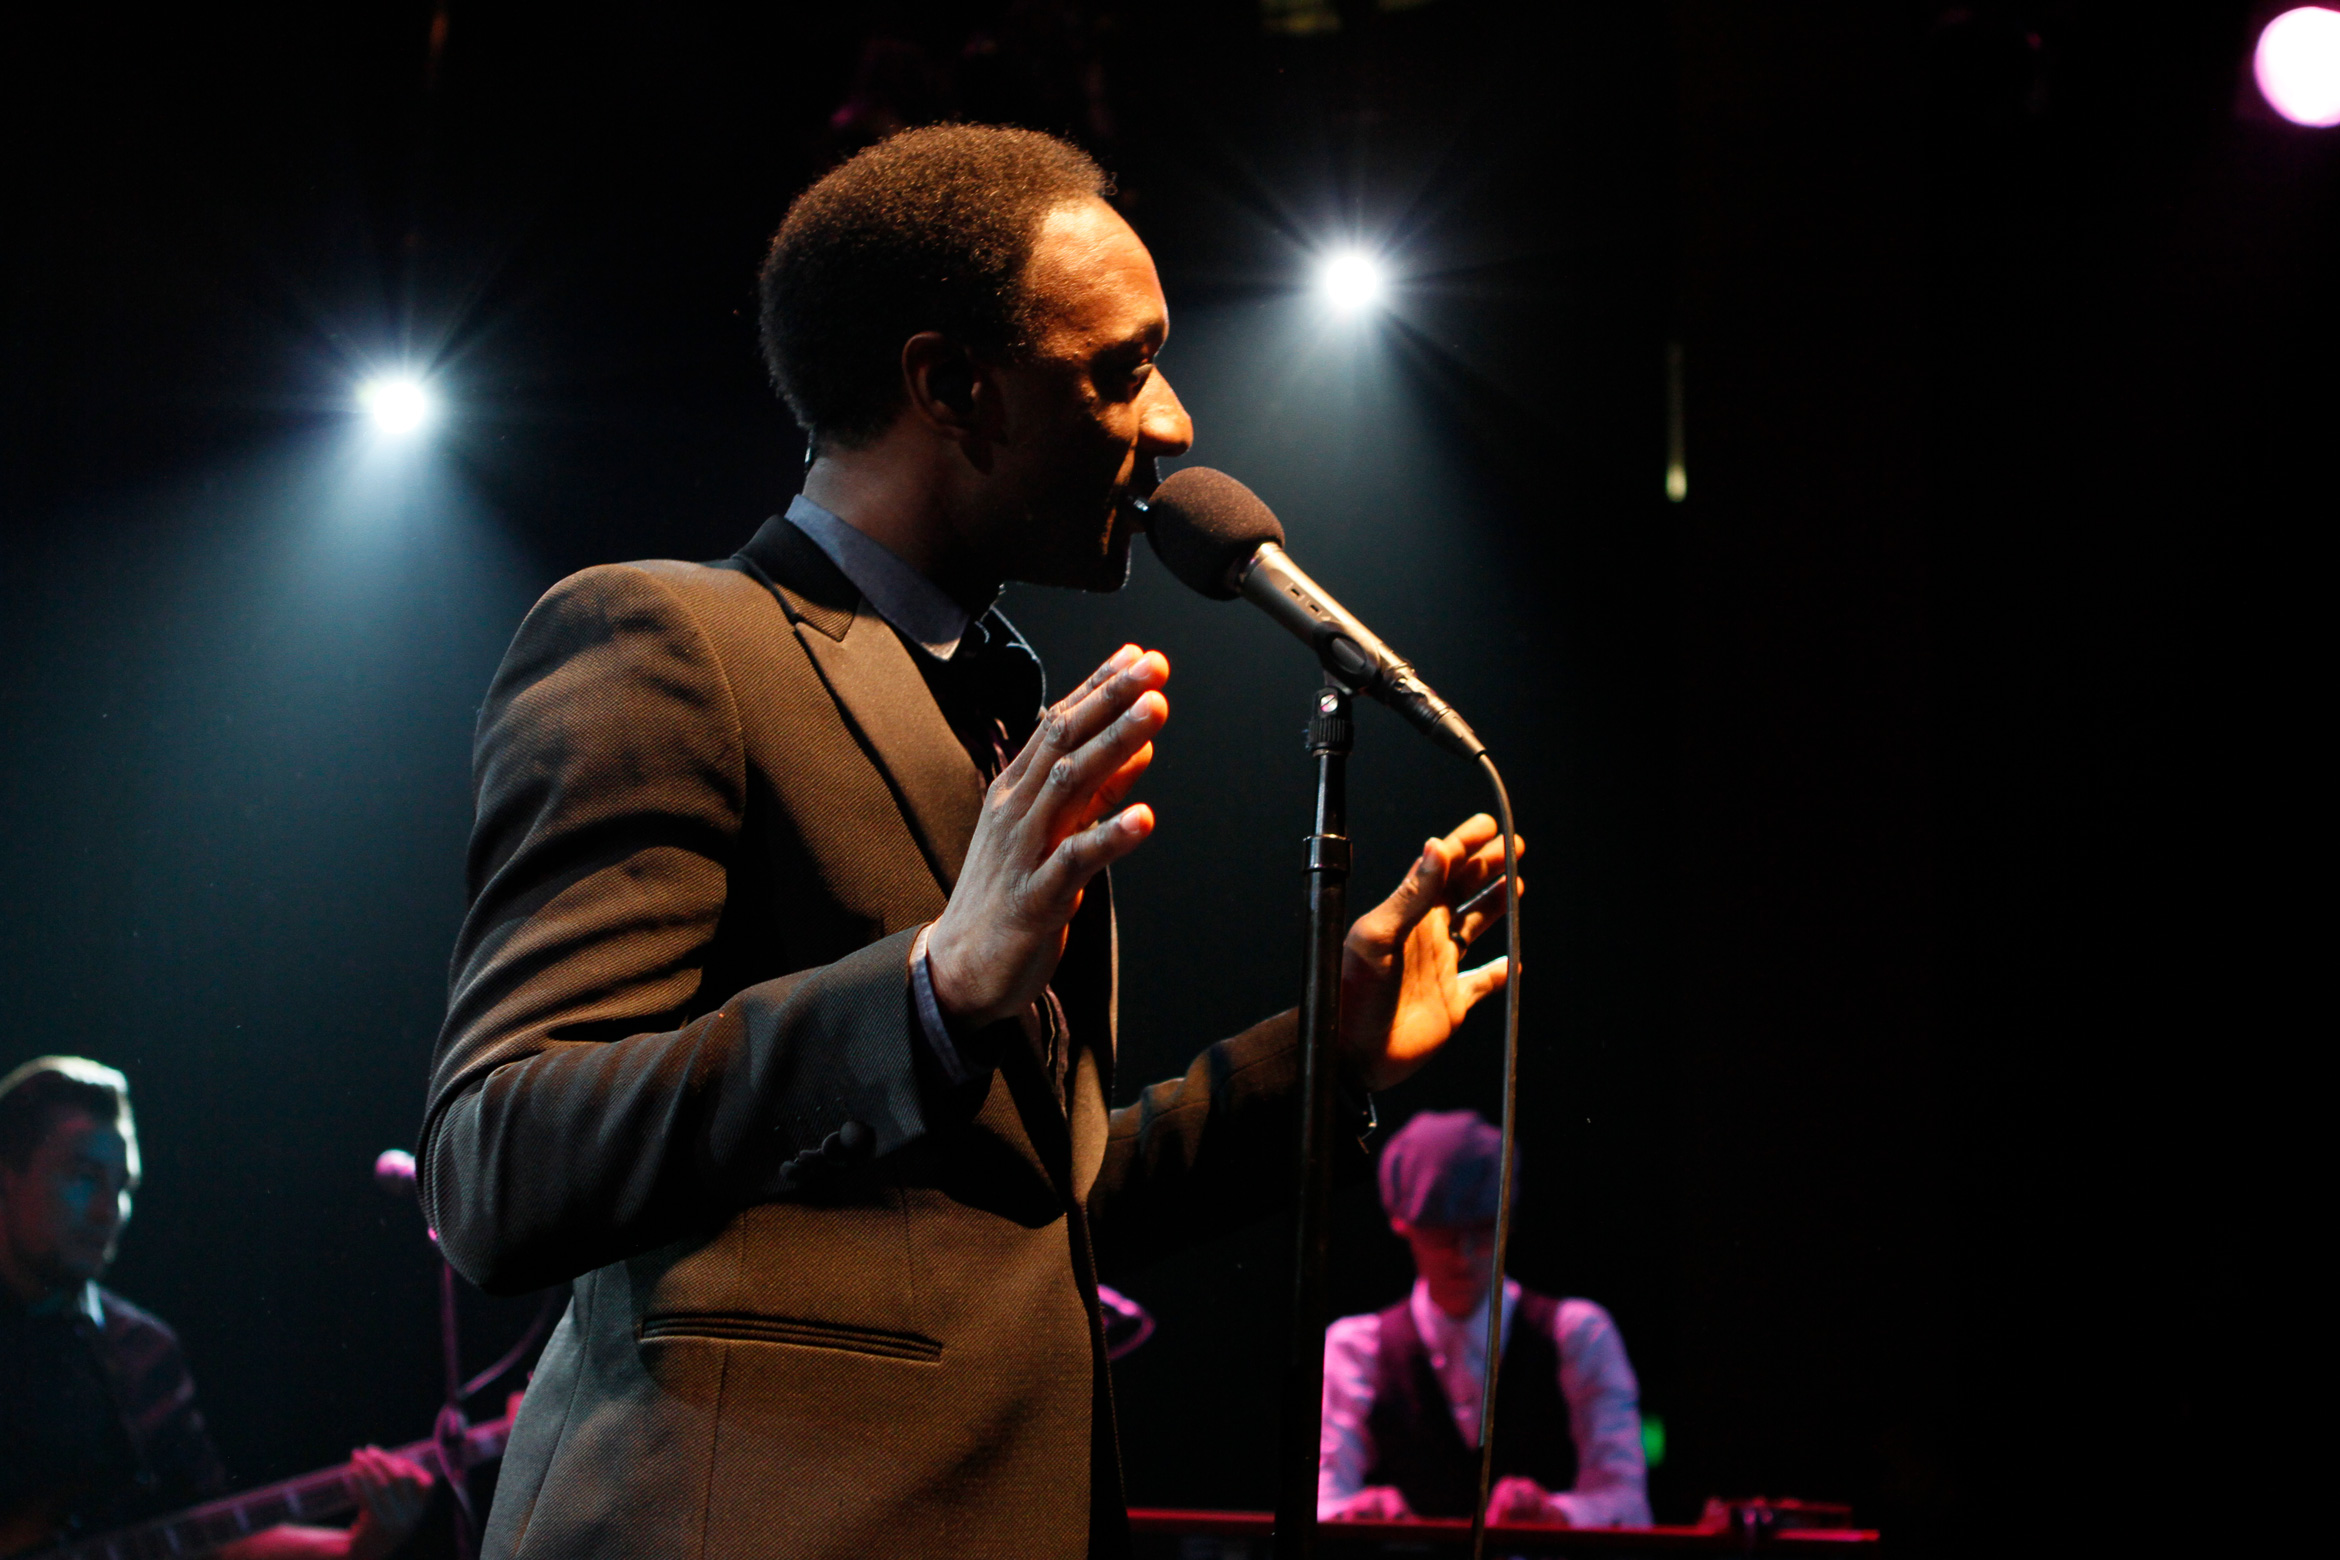 aloe-blacc-melbourne